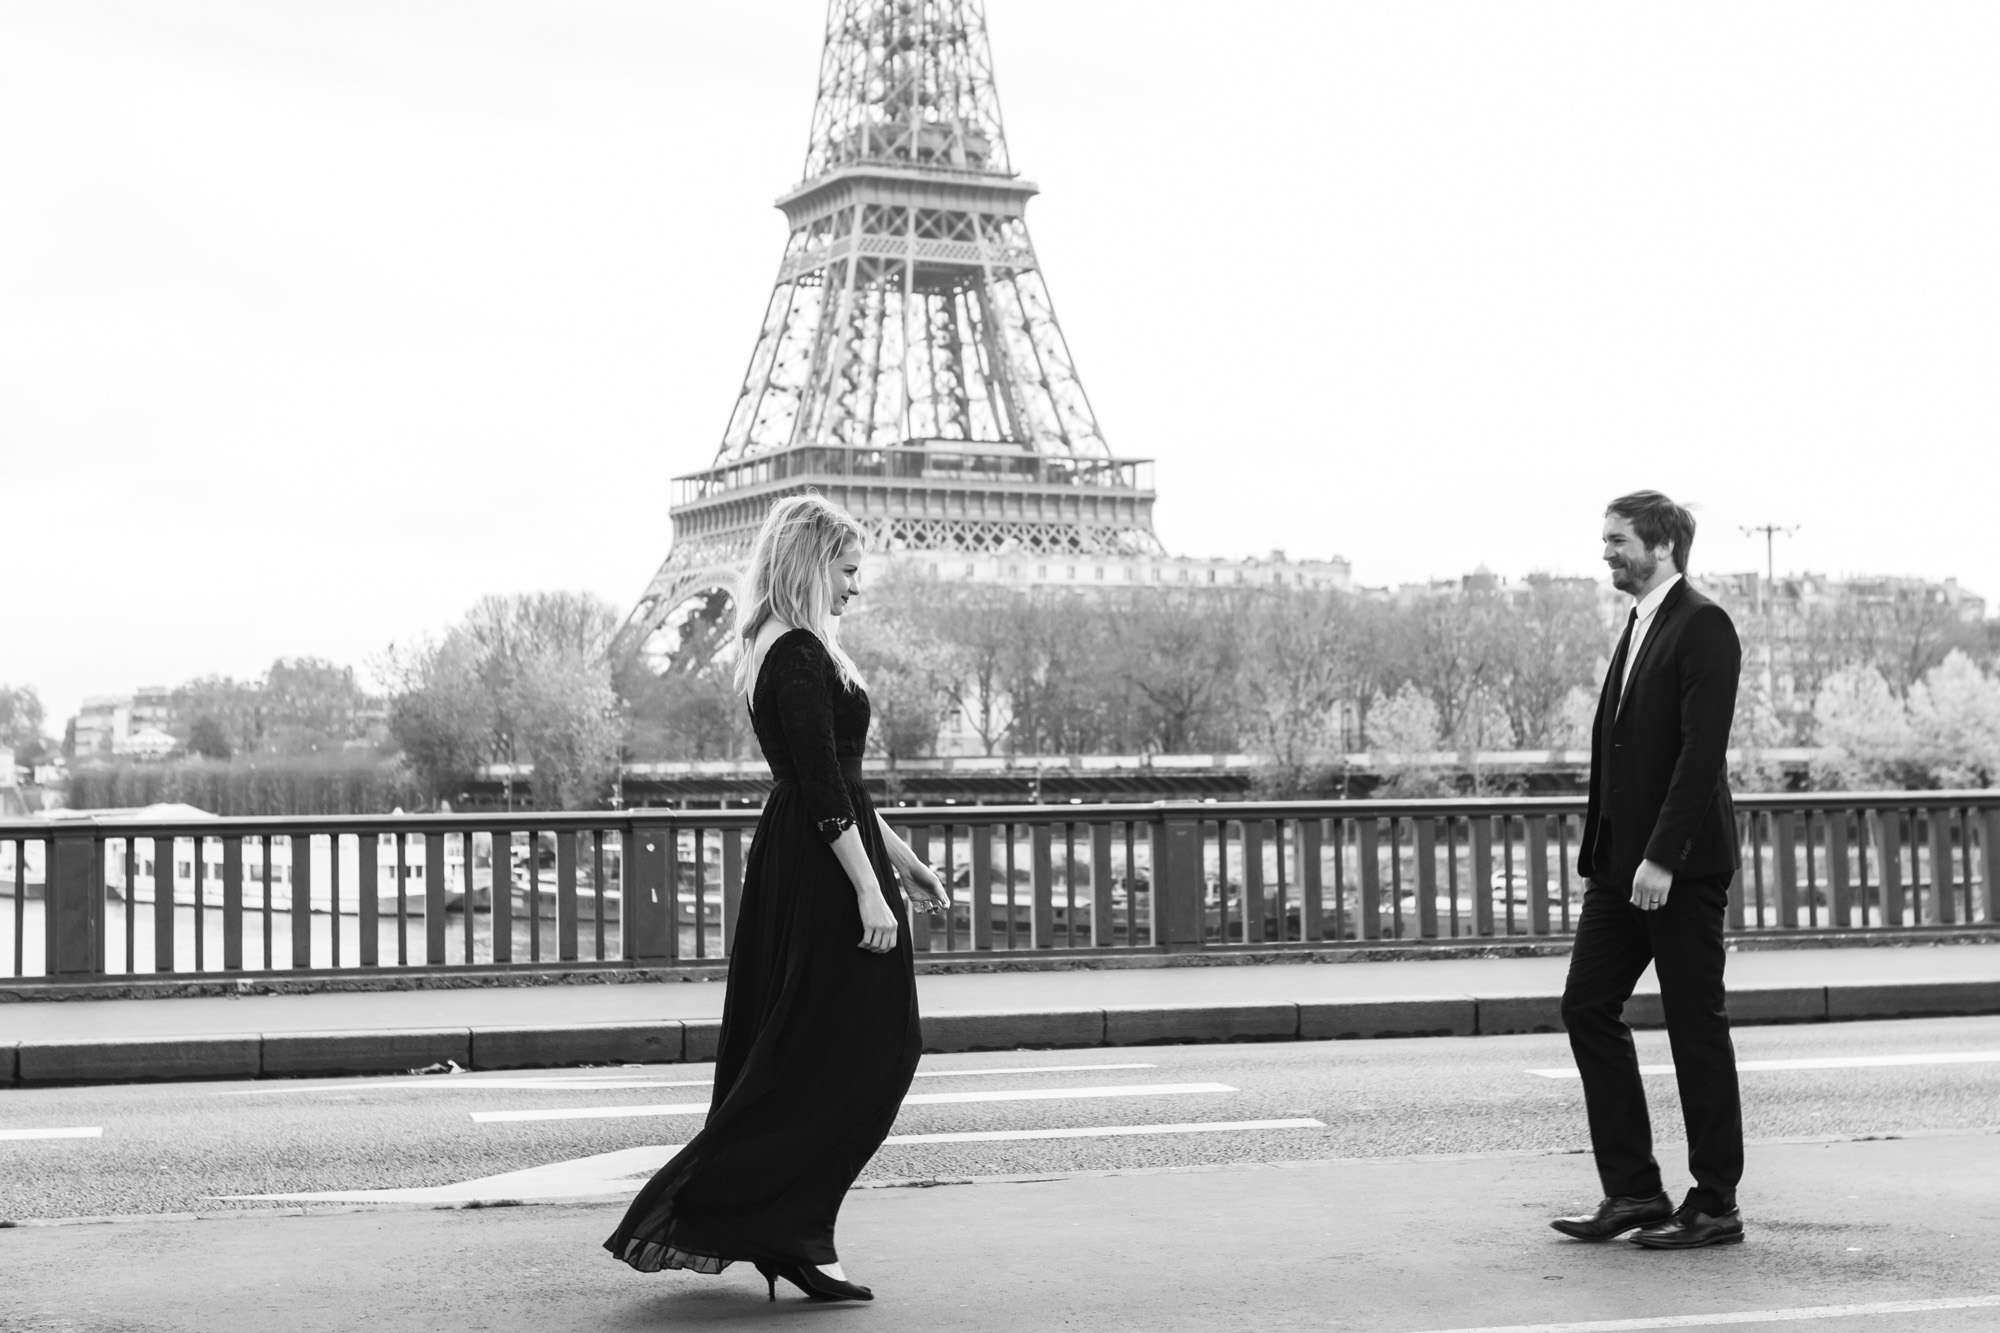 Paris Photographer Federico Guendel captured couple engagement portrait in black and white by the Eiffel Tower at Pont Bir Hakeim